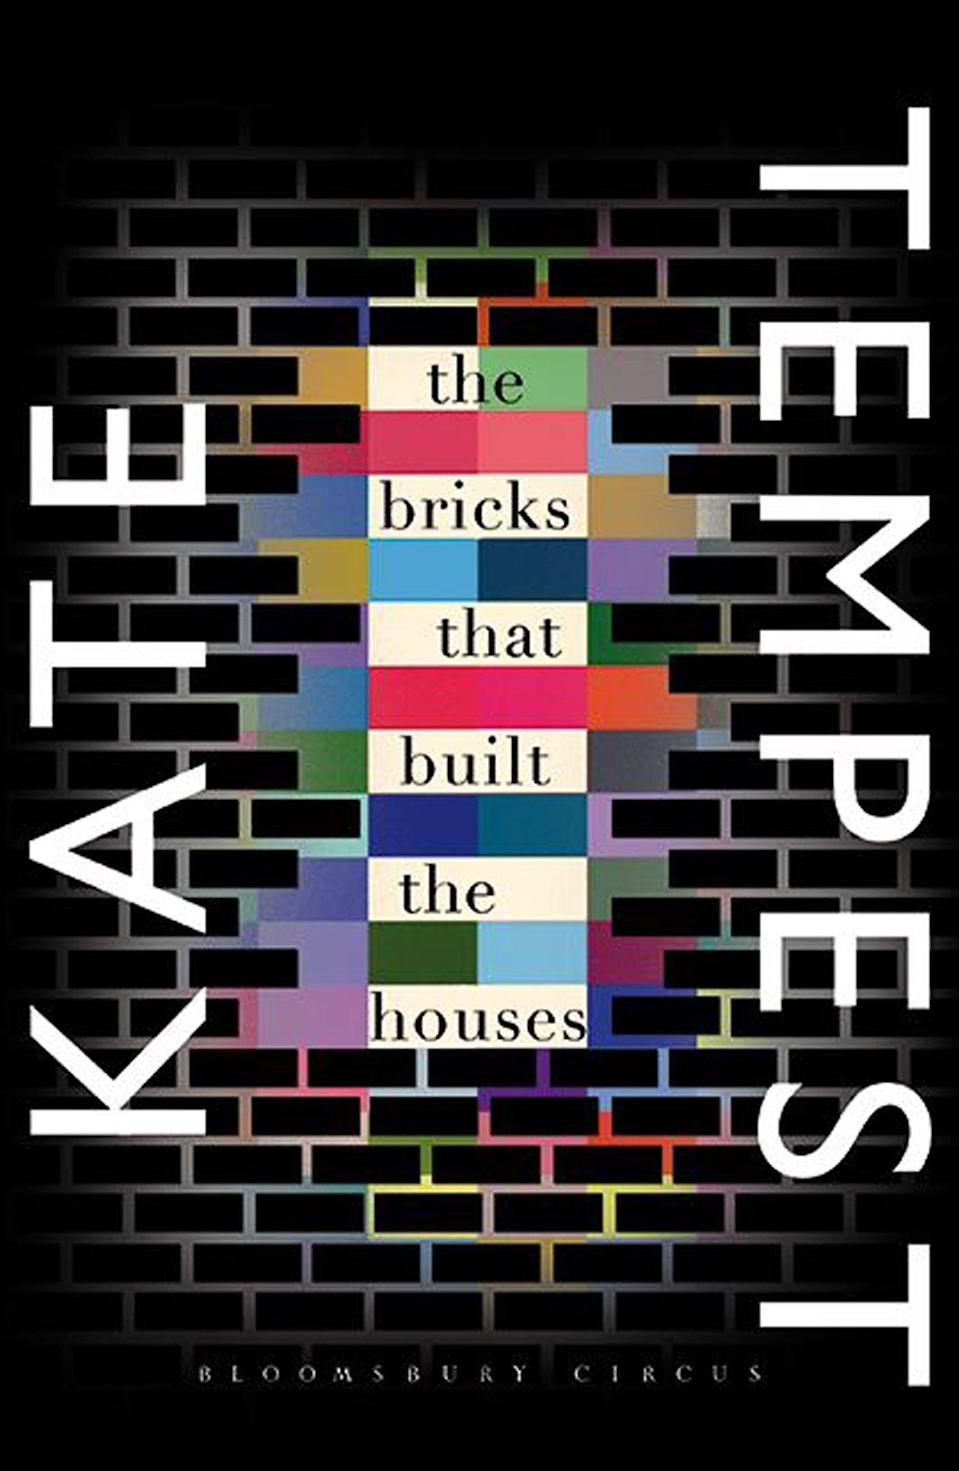 <p><strong><em>The Bricks That Built The Houses</em></strong></p><p>By Kate Tempest</p><p>The debut novel by groundbreaking, award-winning poet and rapper Kate Tempest is a multi-generational story that will plunge you straight into southeast London: drugs, desire, violence and dead-end jobs galore. Three friends set about leaving the city in an old car with a suitcase of money to escape their demons. <em>The Bricks That Built The Houses</em> is a vivid meditation on contemporary city life through a powerful moral lens.</p>